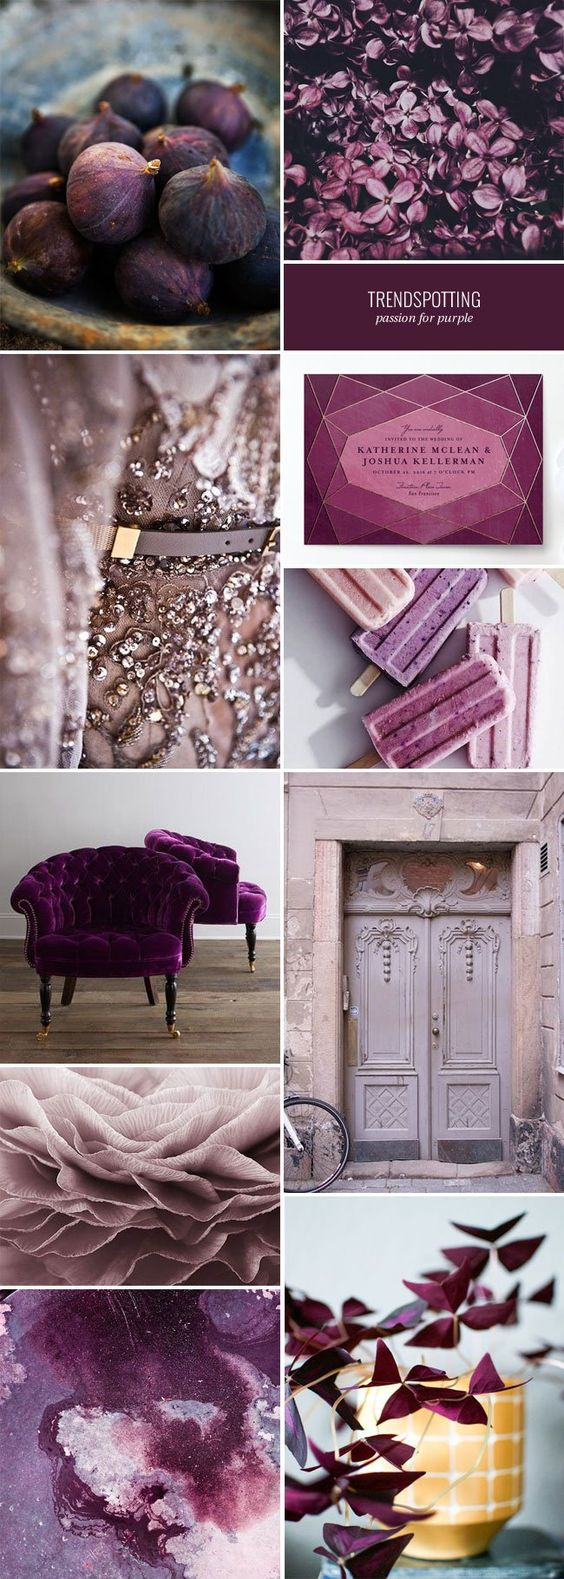 Trendspotting : Passion for Purple. #design #colour #ambience trends, design trends, colors inspiration. See more at http://www.brabbu.com/en/inspiration-and-ideas/category/trends: